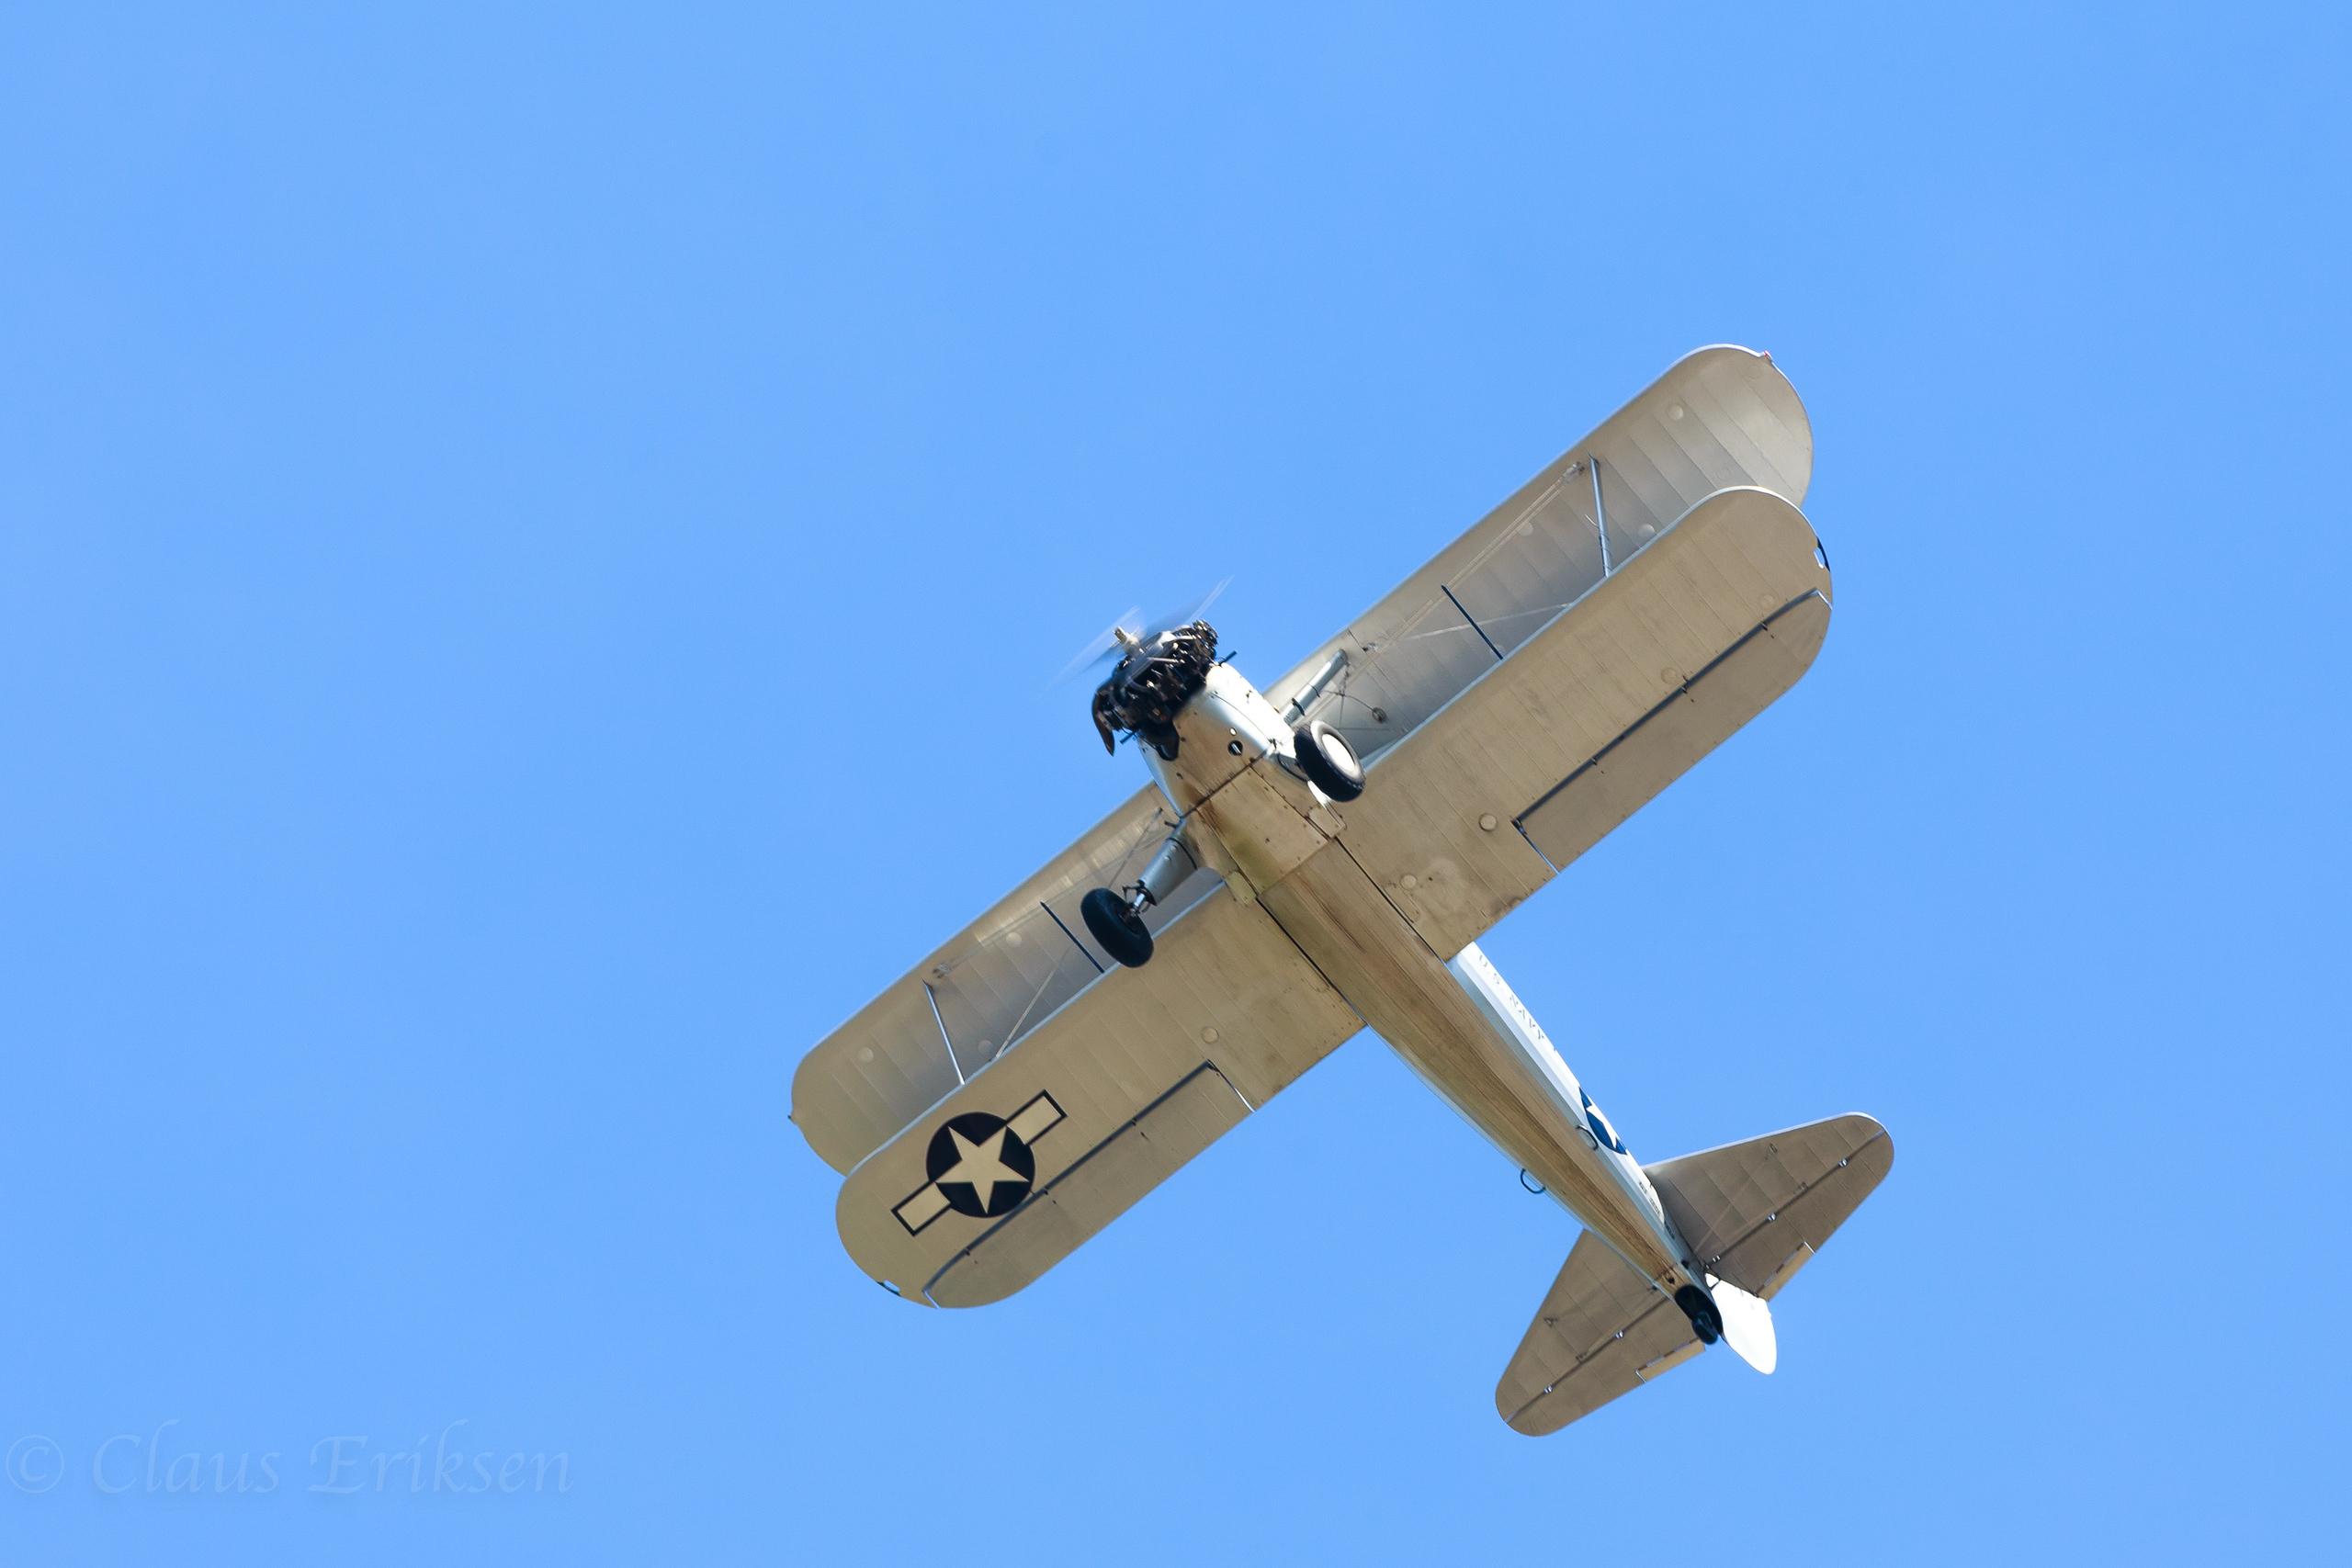 Bottom of Stearman